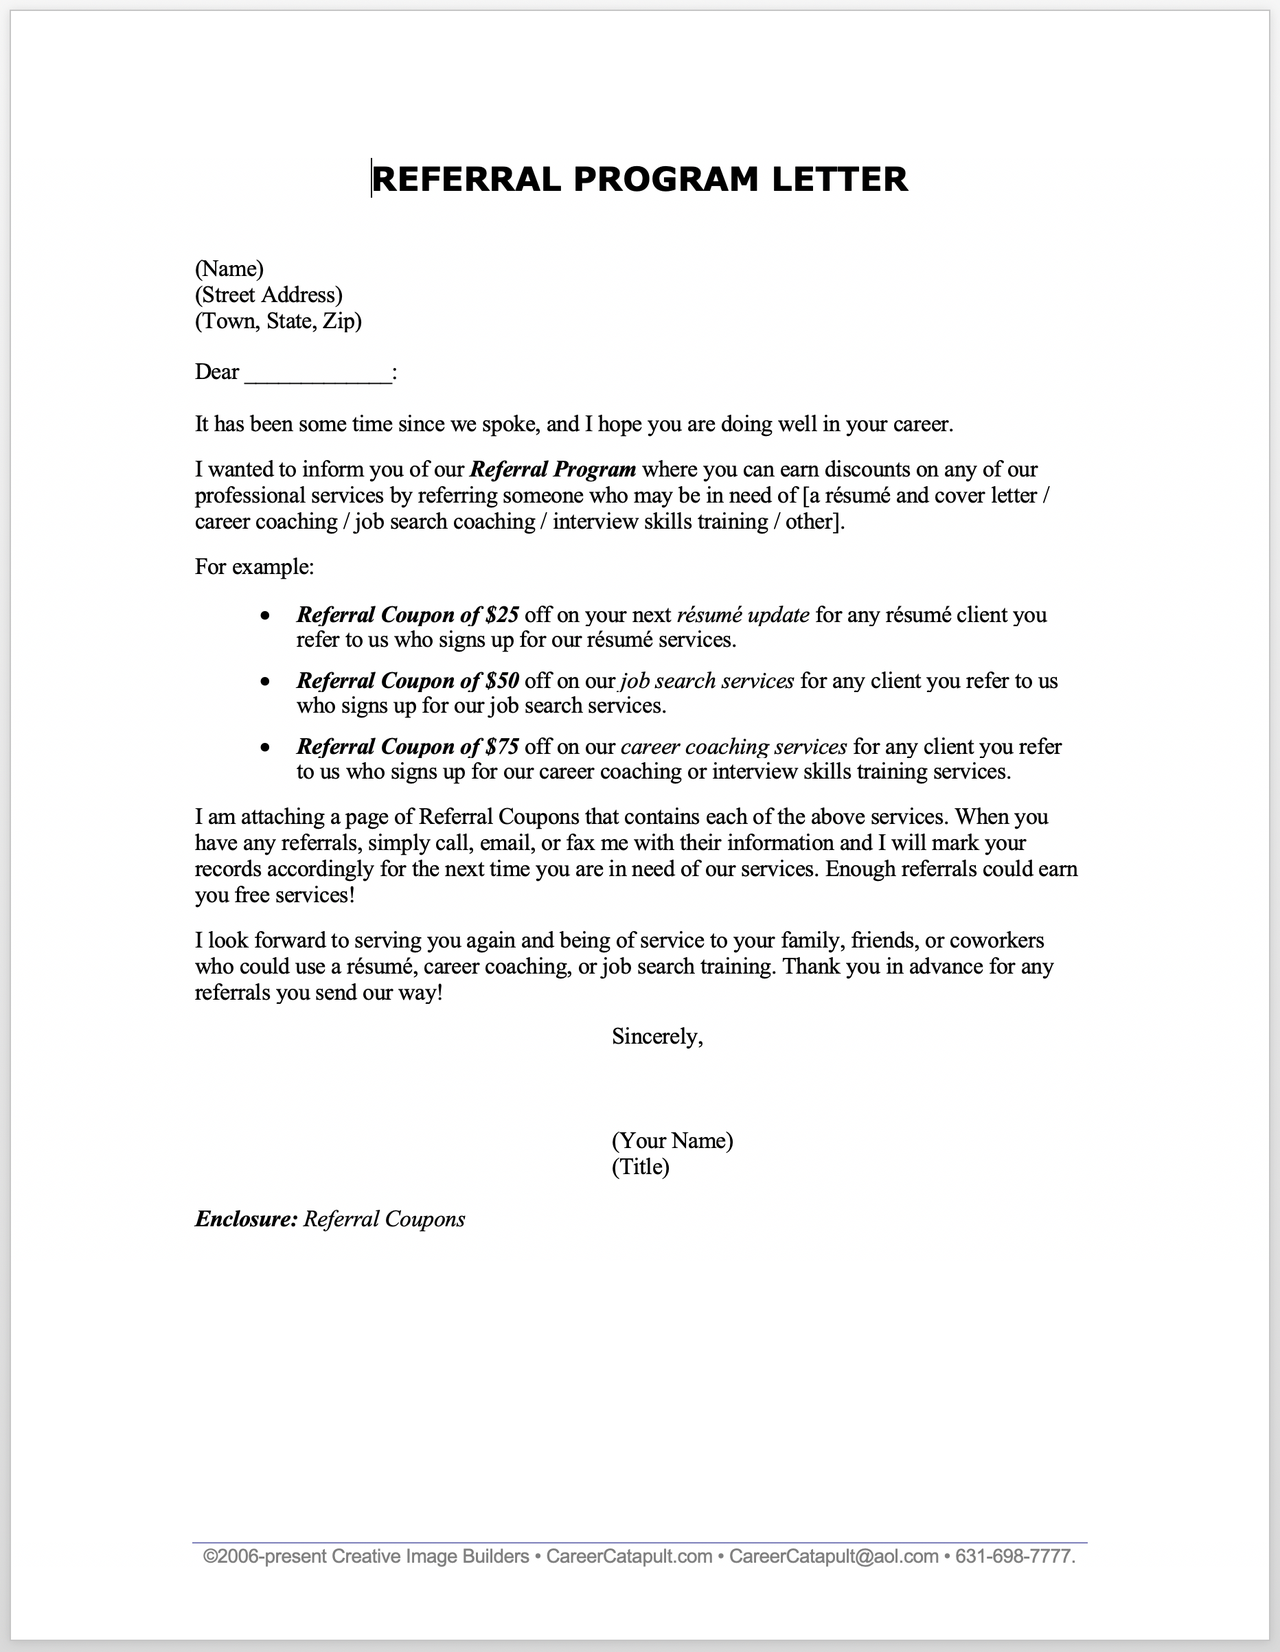 referral program letter.png